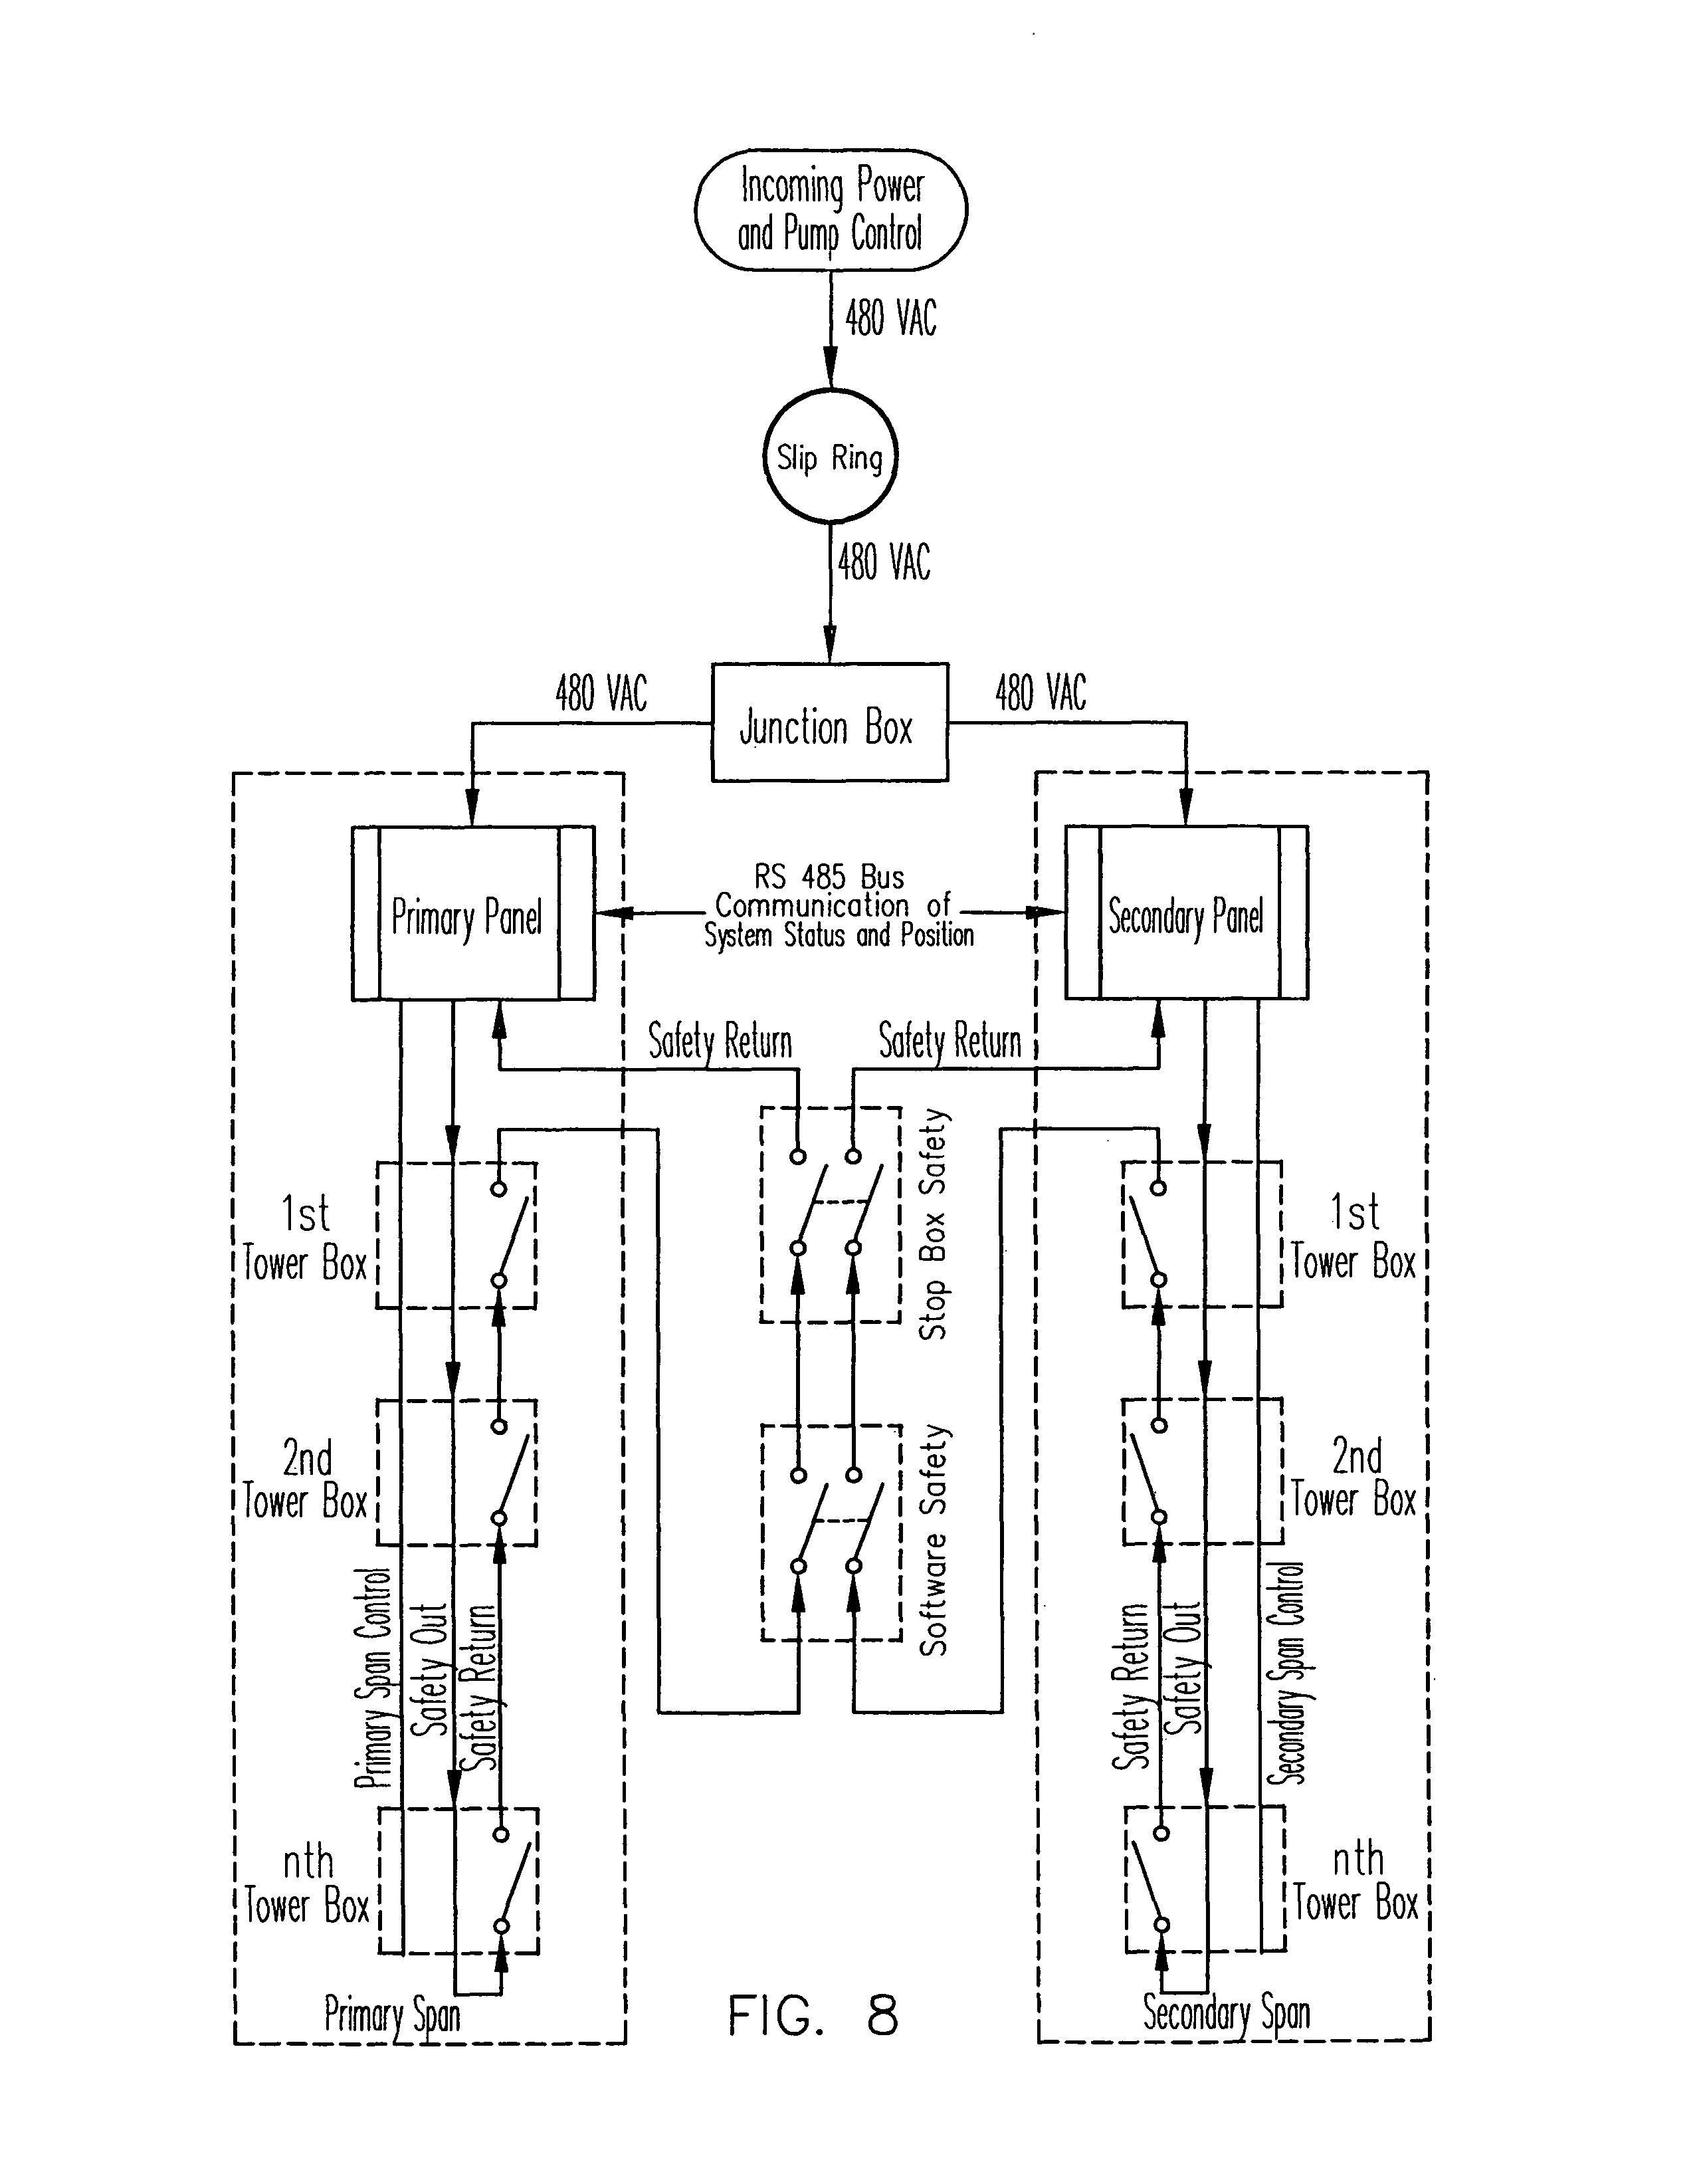 Center Pivot Irrigation Wiring Diagrams 39 Diagram Images 20121127 D00006 Patent Us8317114 Dual Span System Black And White